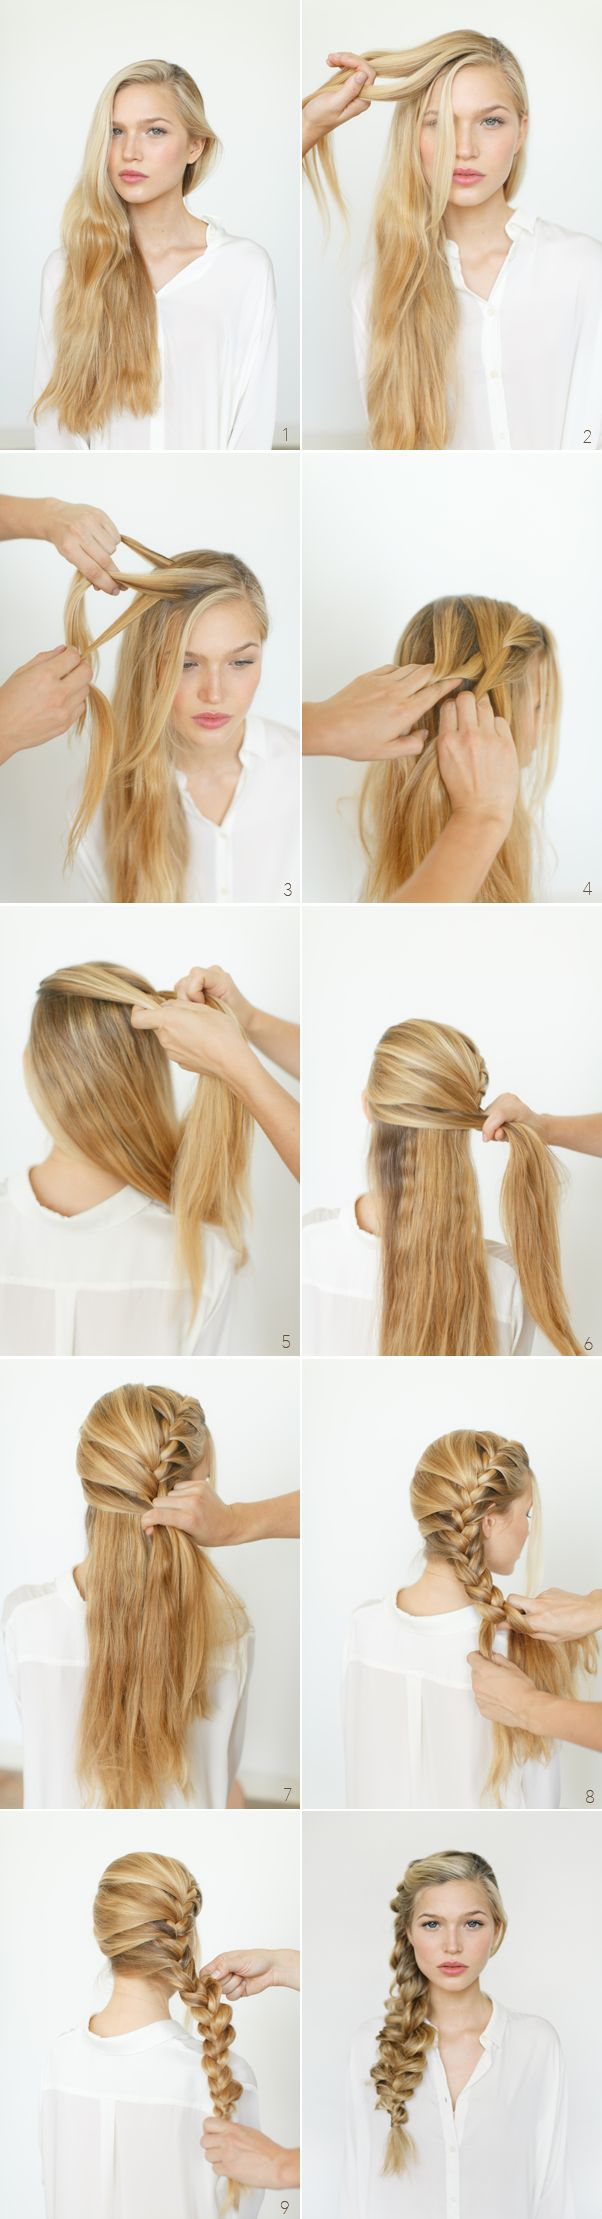 17 amazing hairstyle tutorials #hair #diy #beauty #hairstyle http://www.stylemotivation.com/17-romantic-hairstyle-ideas-and-tutorials/